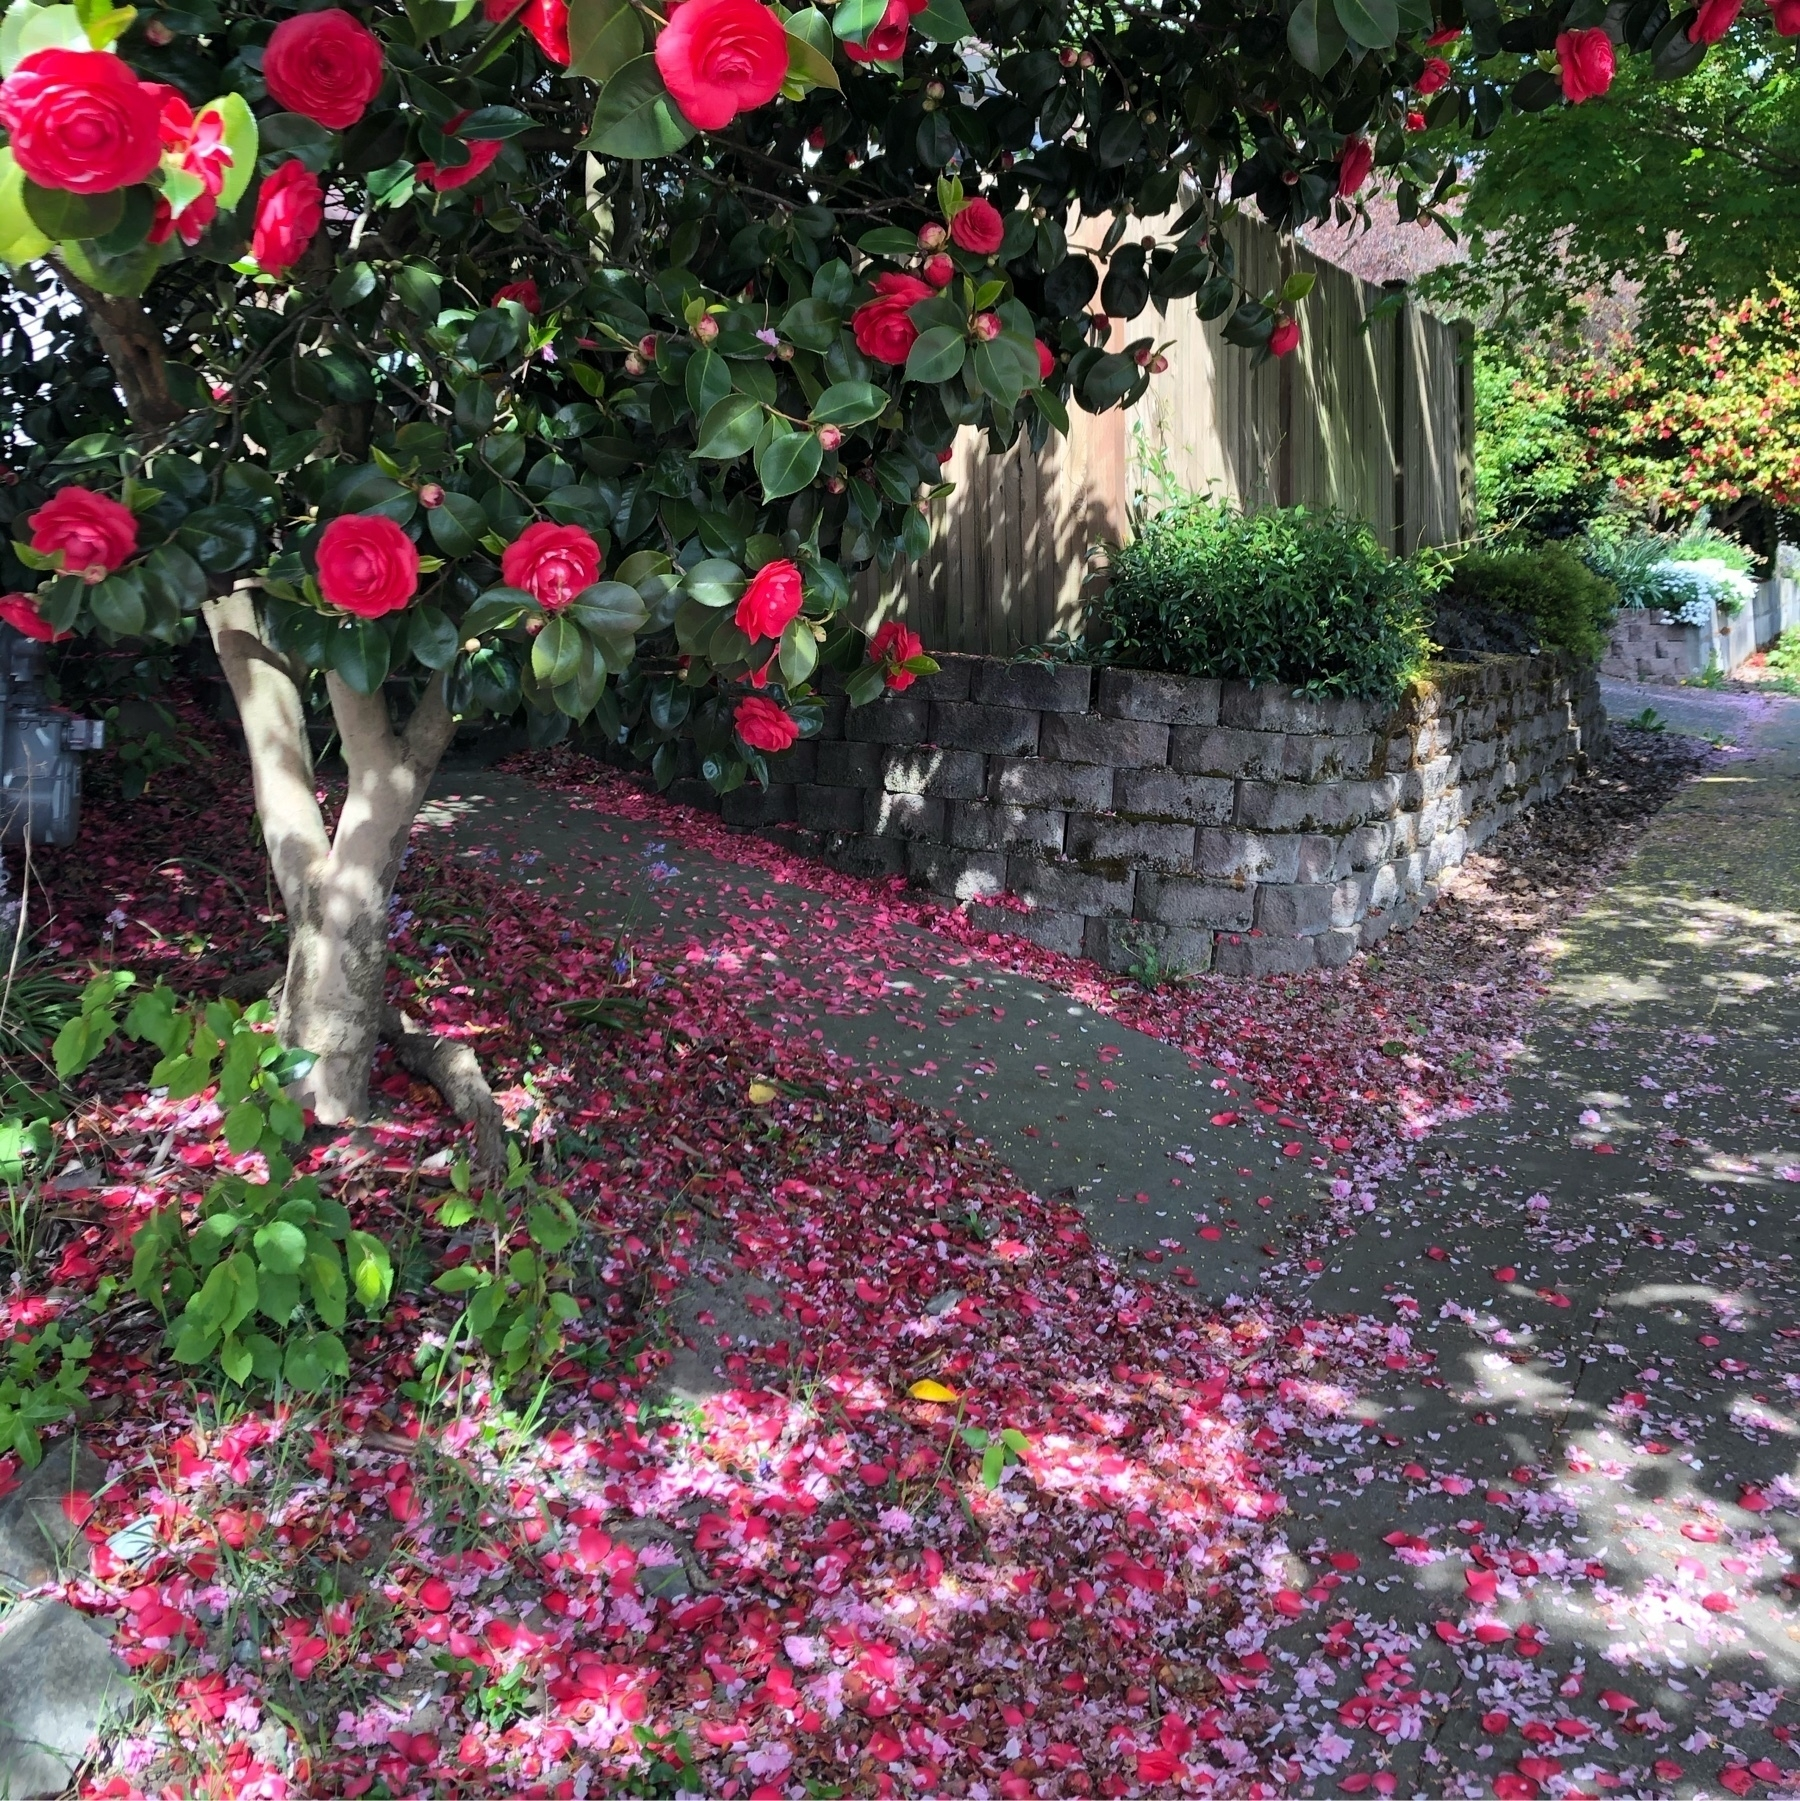 A residental sidewalk is caked with pink and red petals